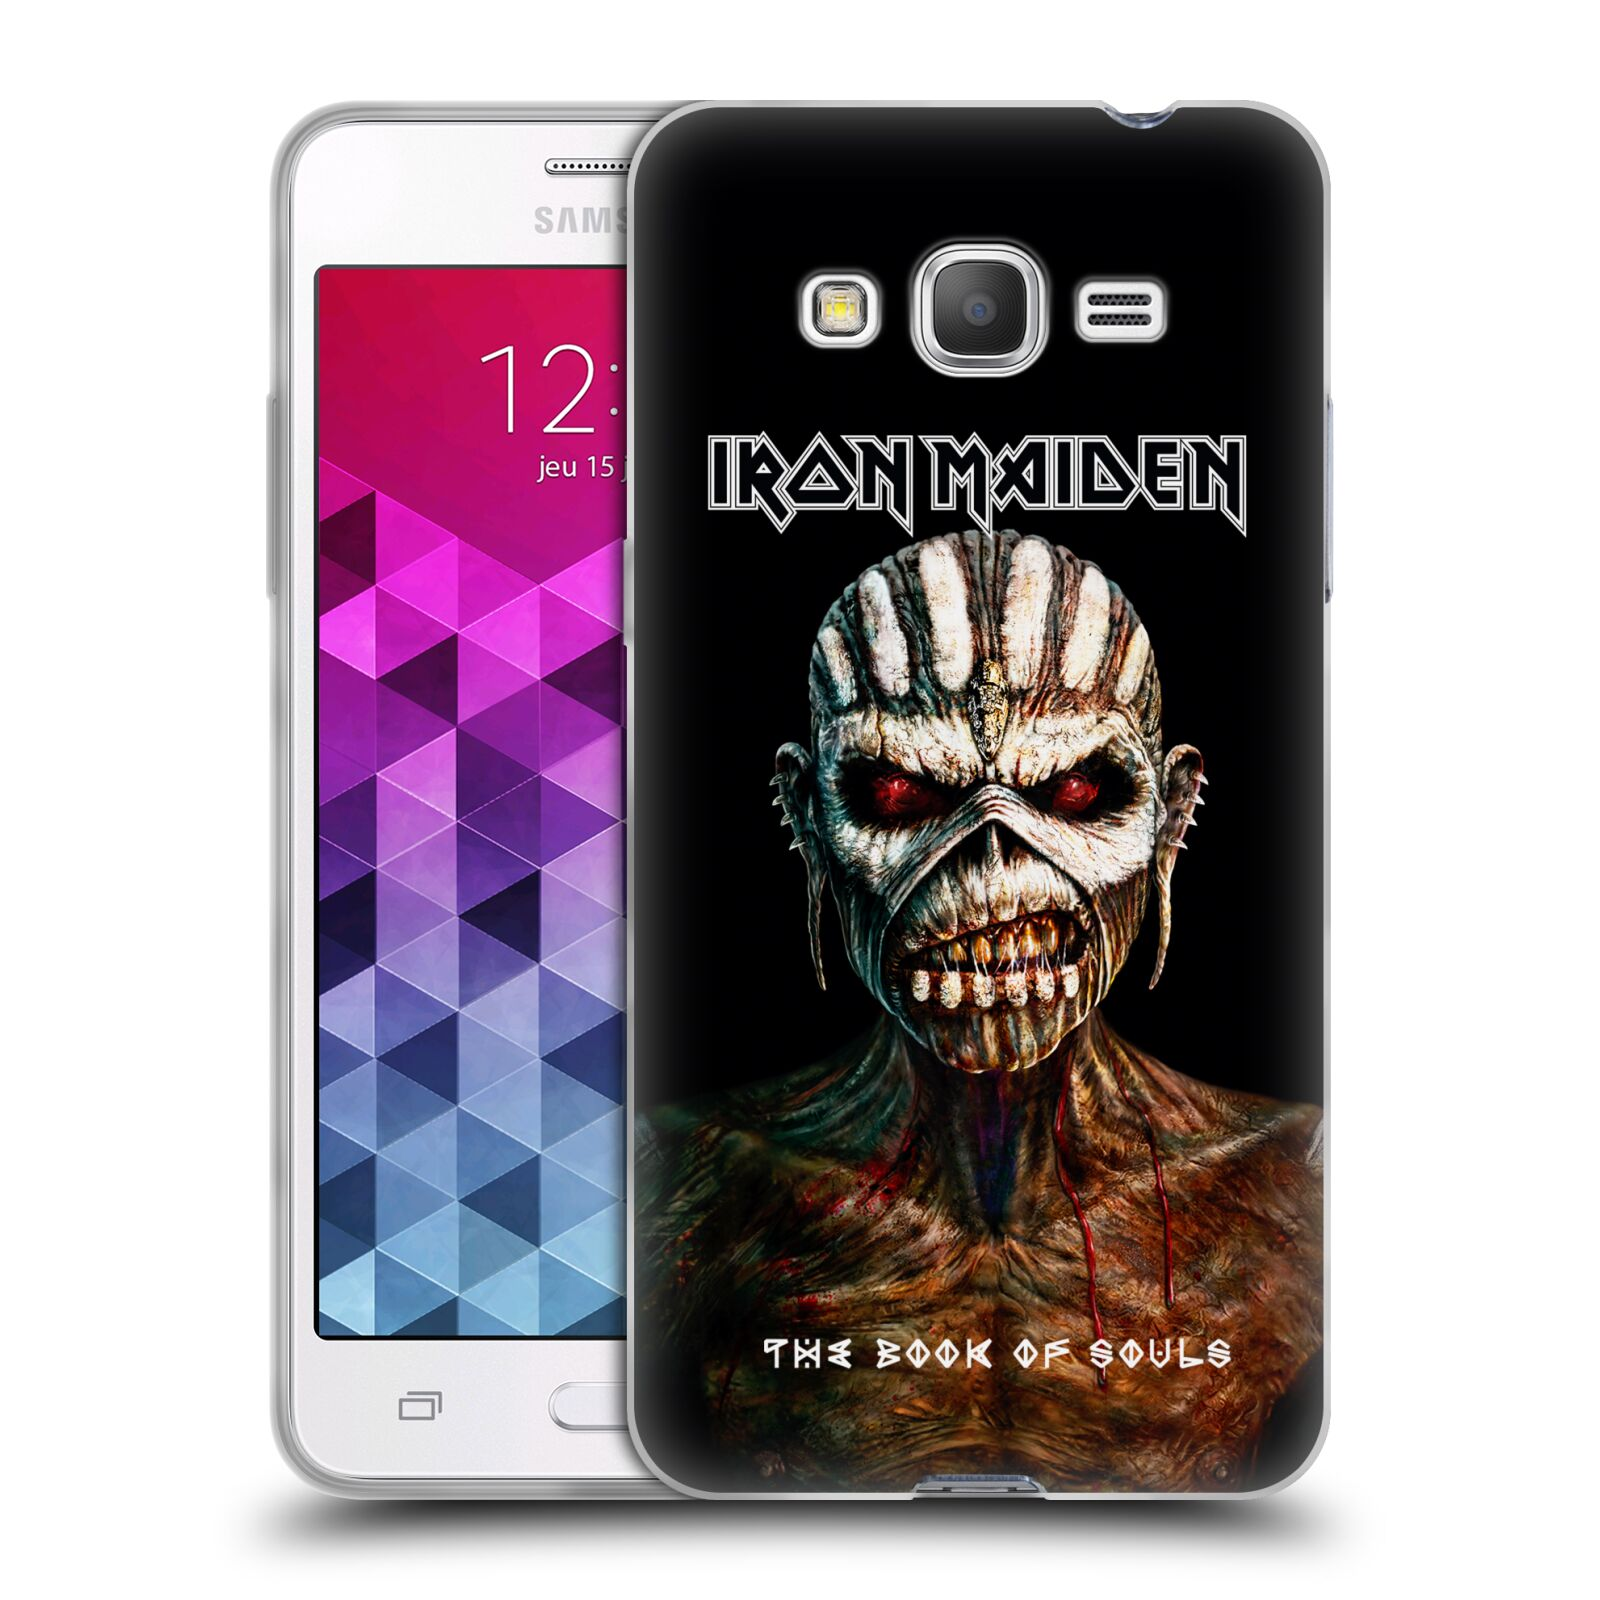 HEAD CASE silikonový obal na mobil Samsung Galaxy Grand Prime Heavymetalová skupina Iron Maiden The Book Of Souls